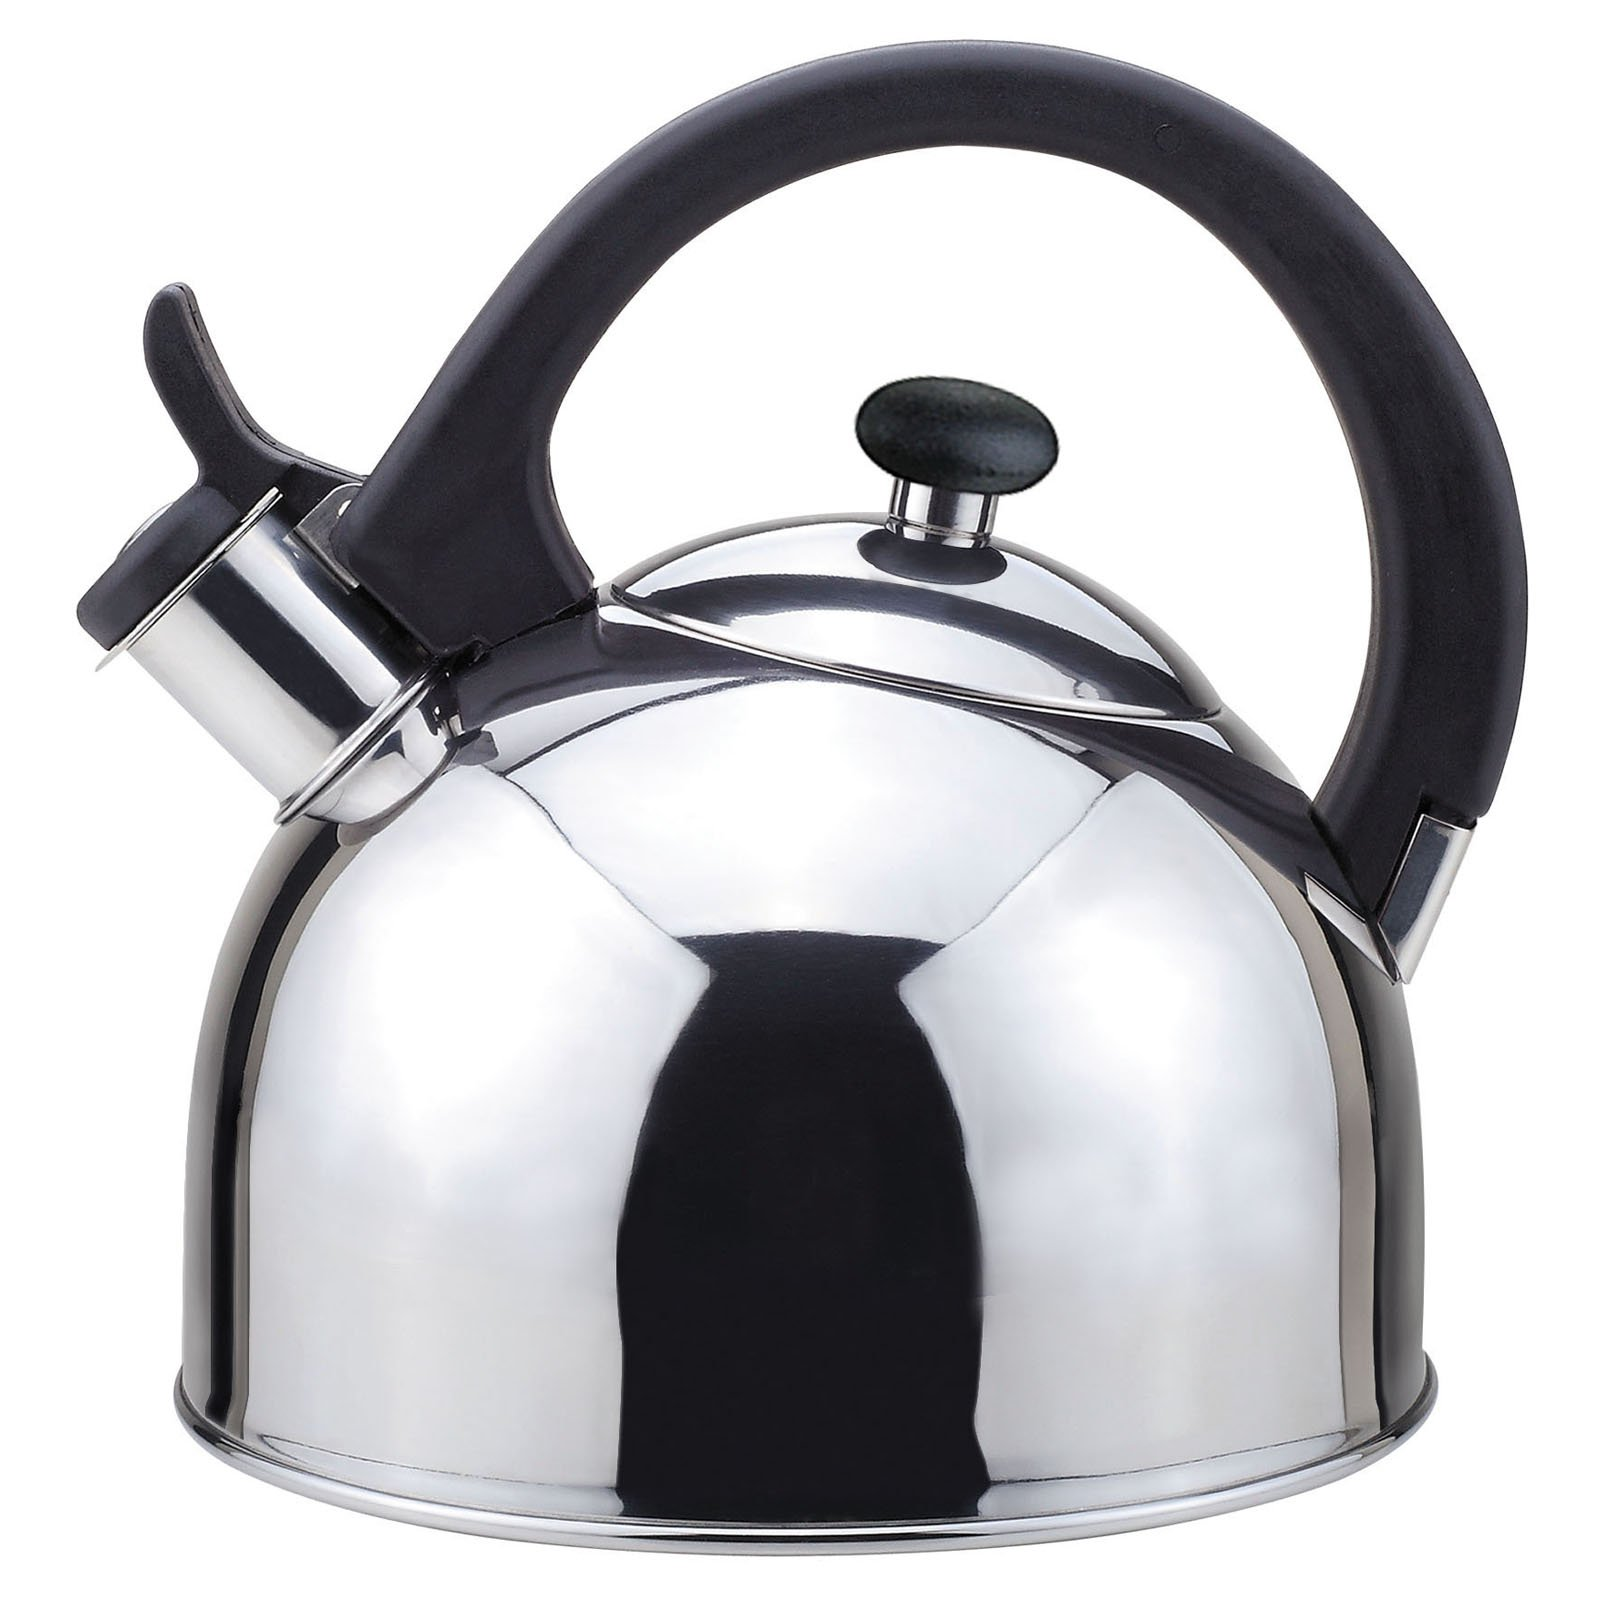 Nubia 2 Qts. Stainless Steel Stovetop Tea Kettle with Whistle with